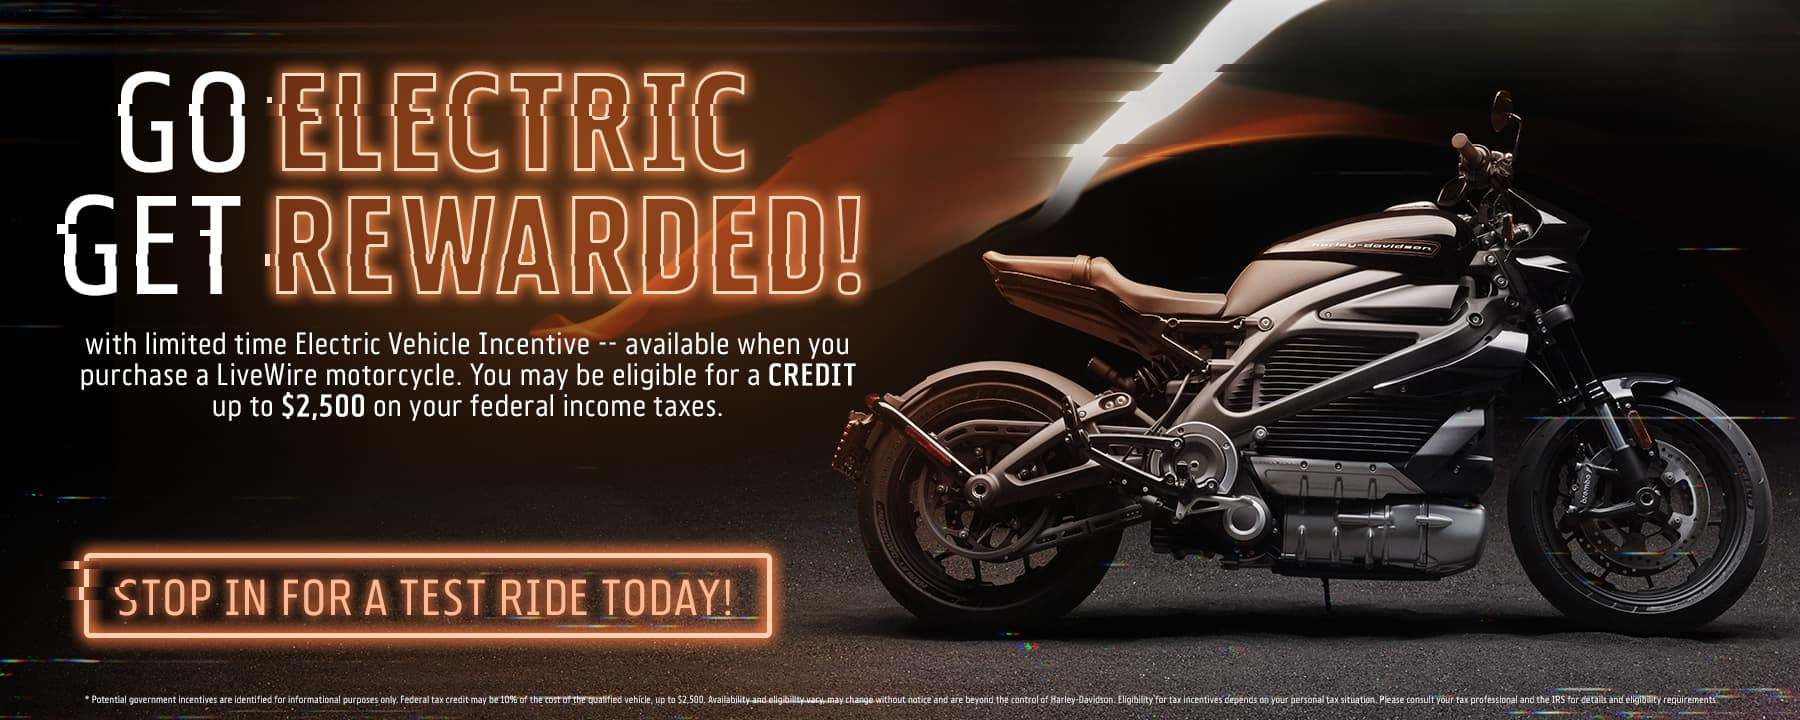 Go Electric & Get Rewarded at Lakeland Harley Davidson